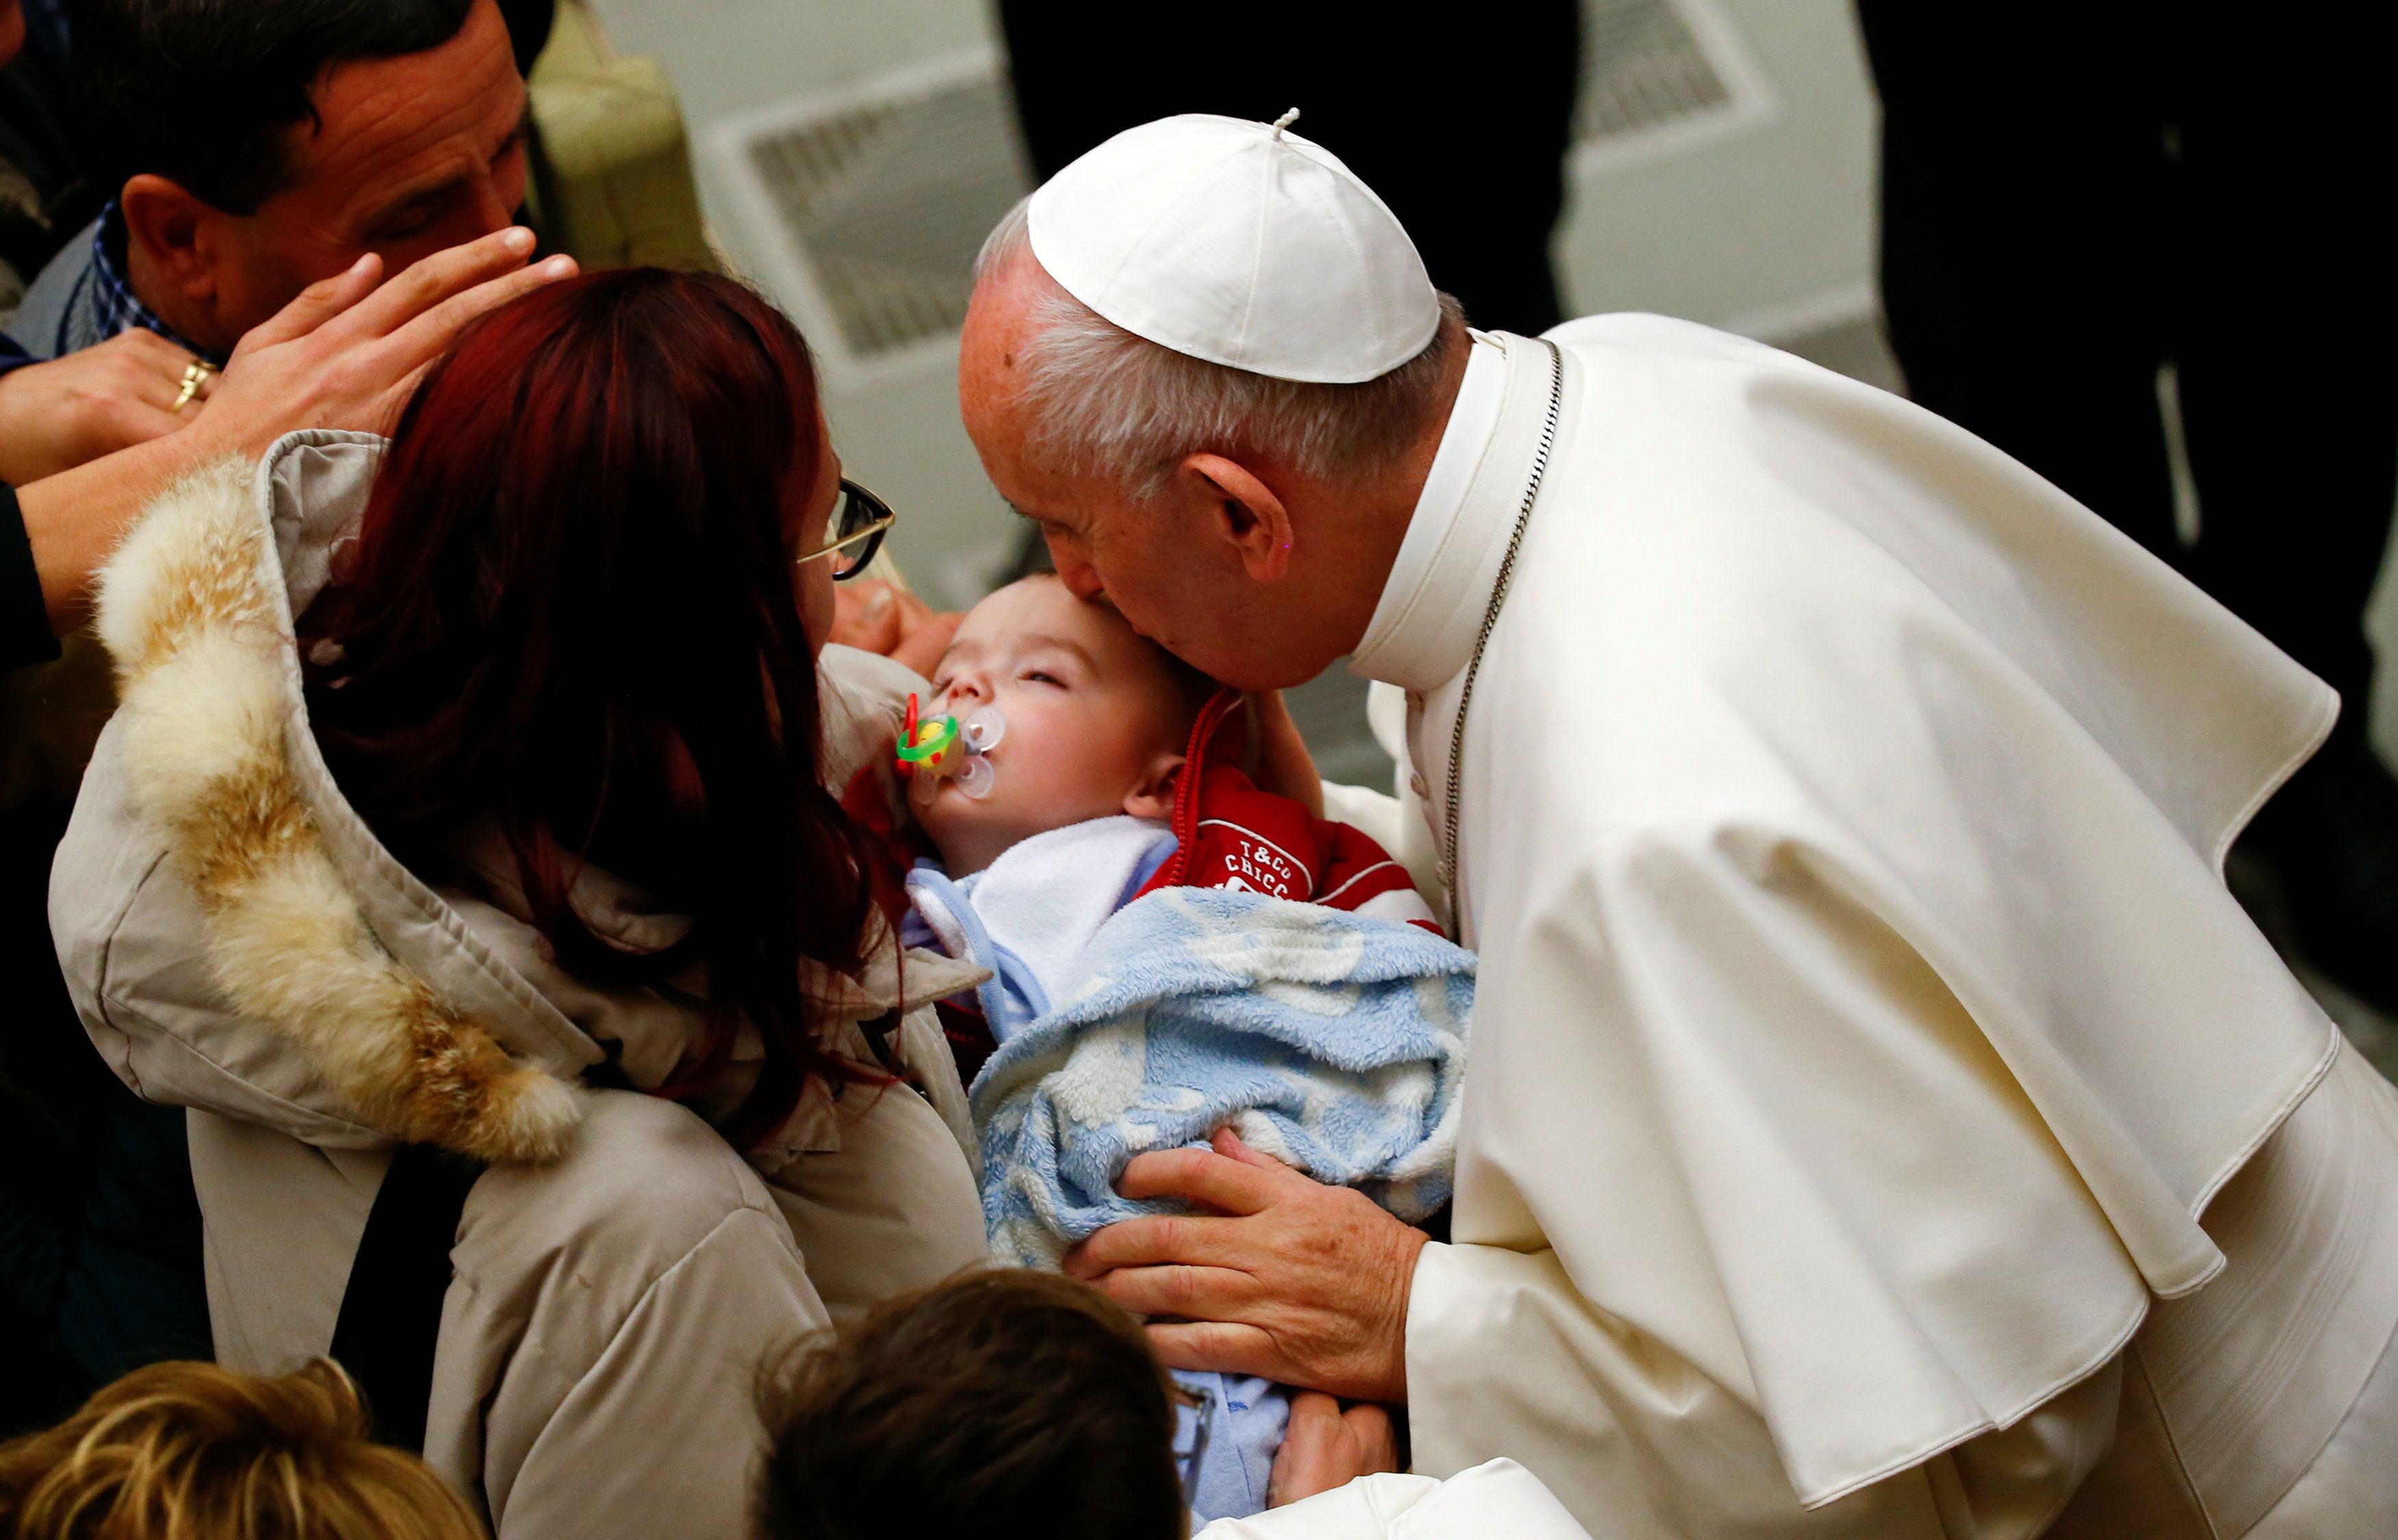 Pope Francishas expressed his support for breastfeeding mothers in the past.